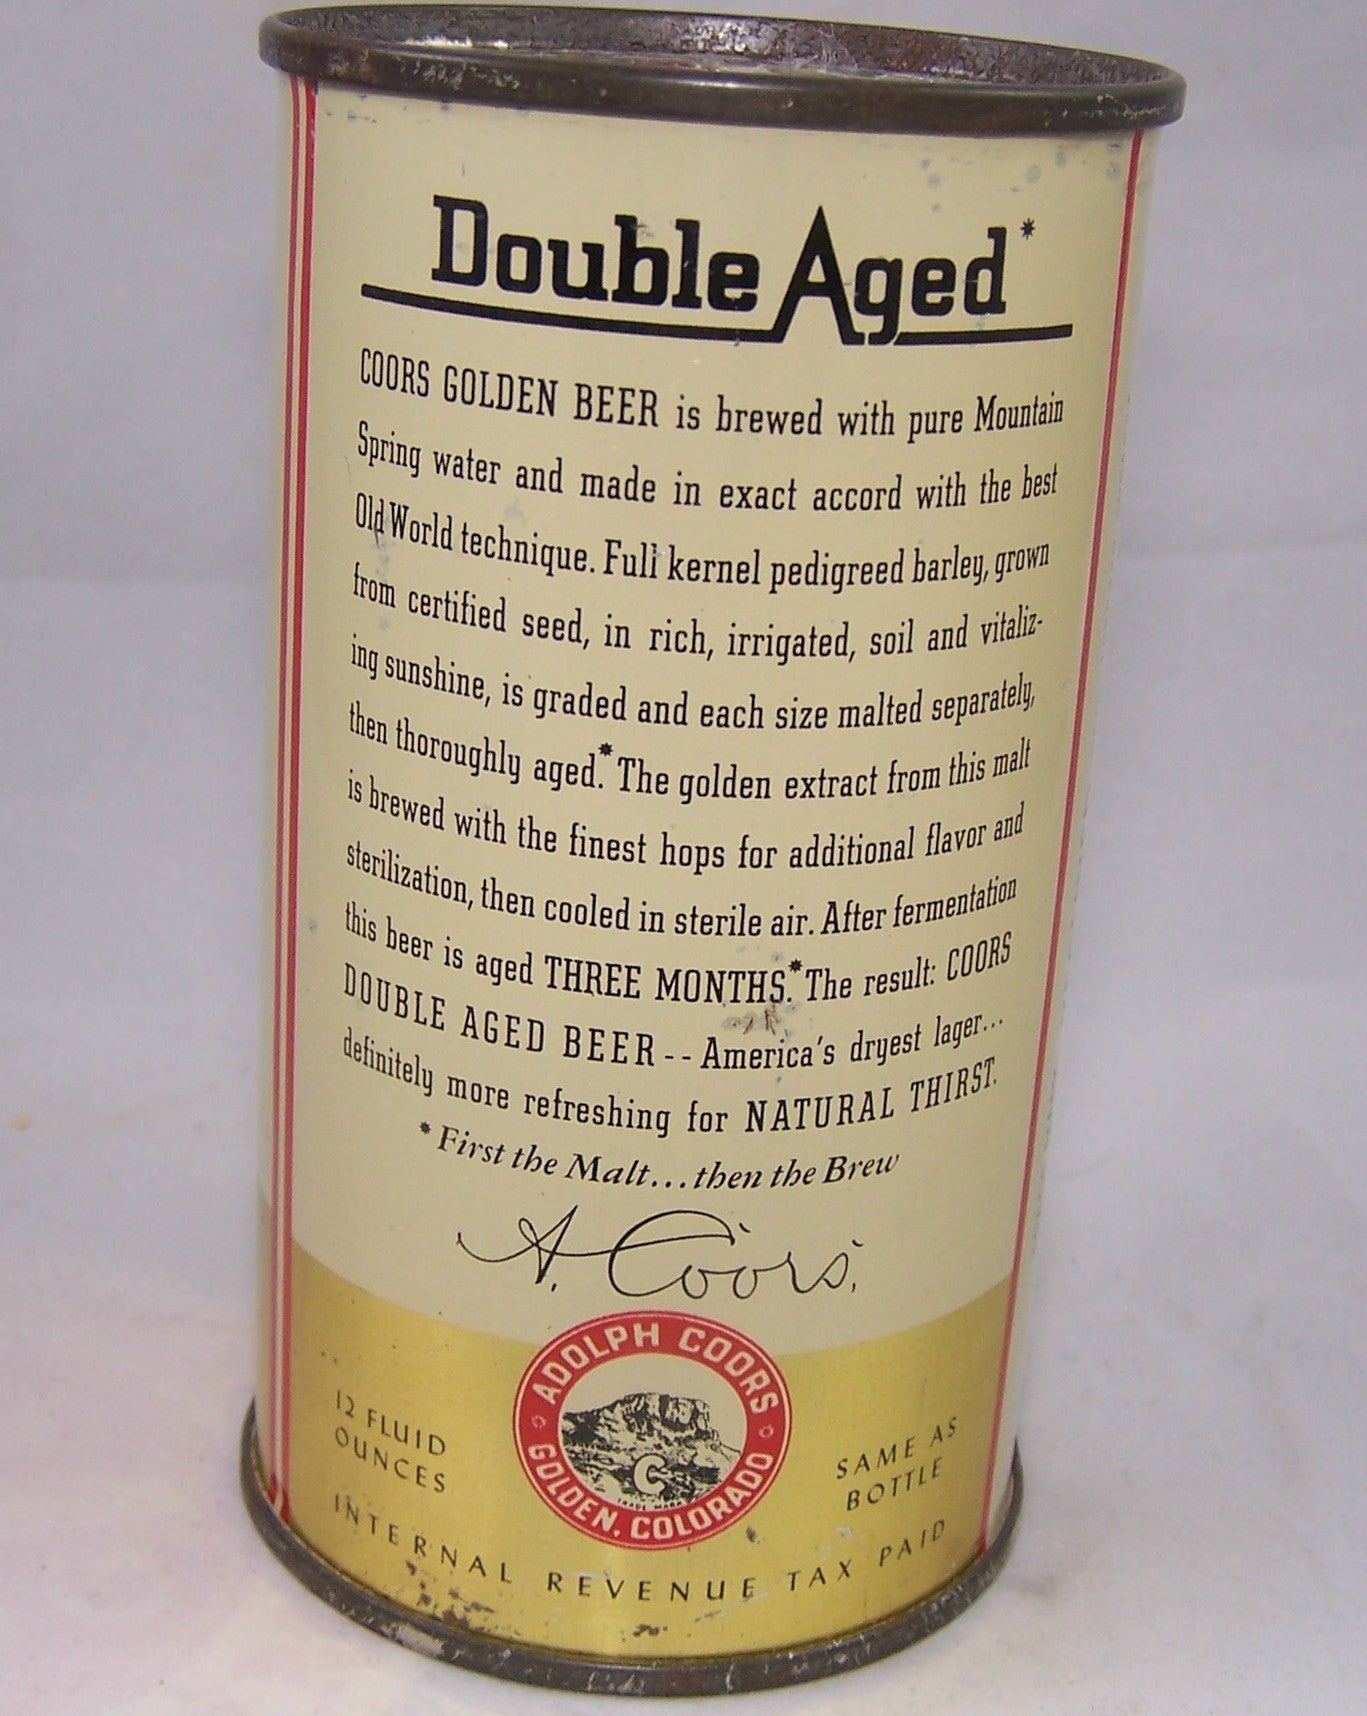 Coors Golden Double Aged, USBC 51-19, Grade 1/1- Sold on 04/02/17